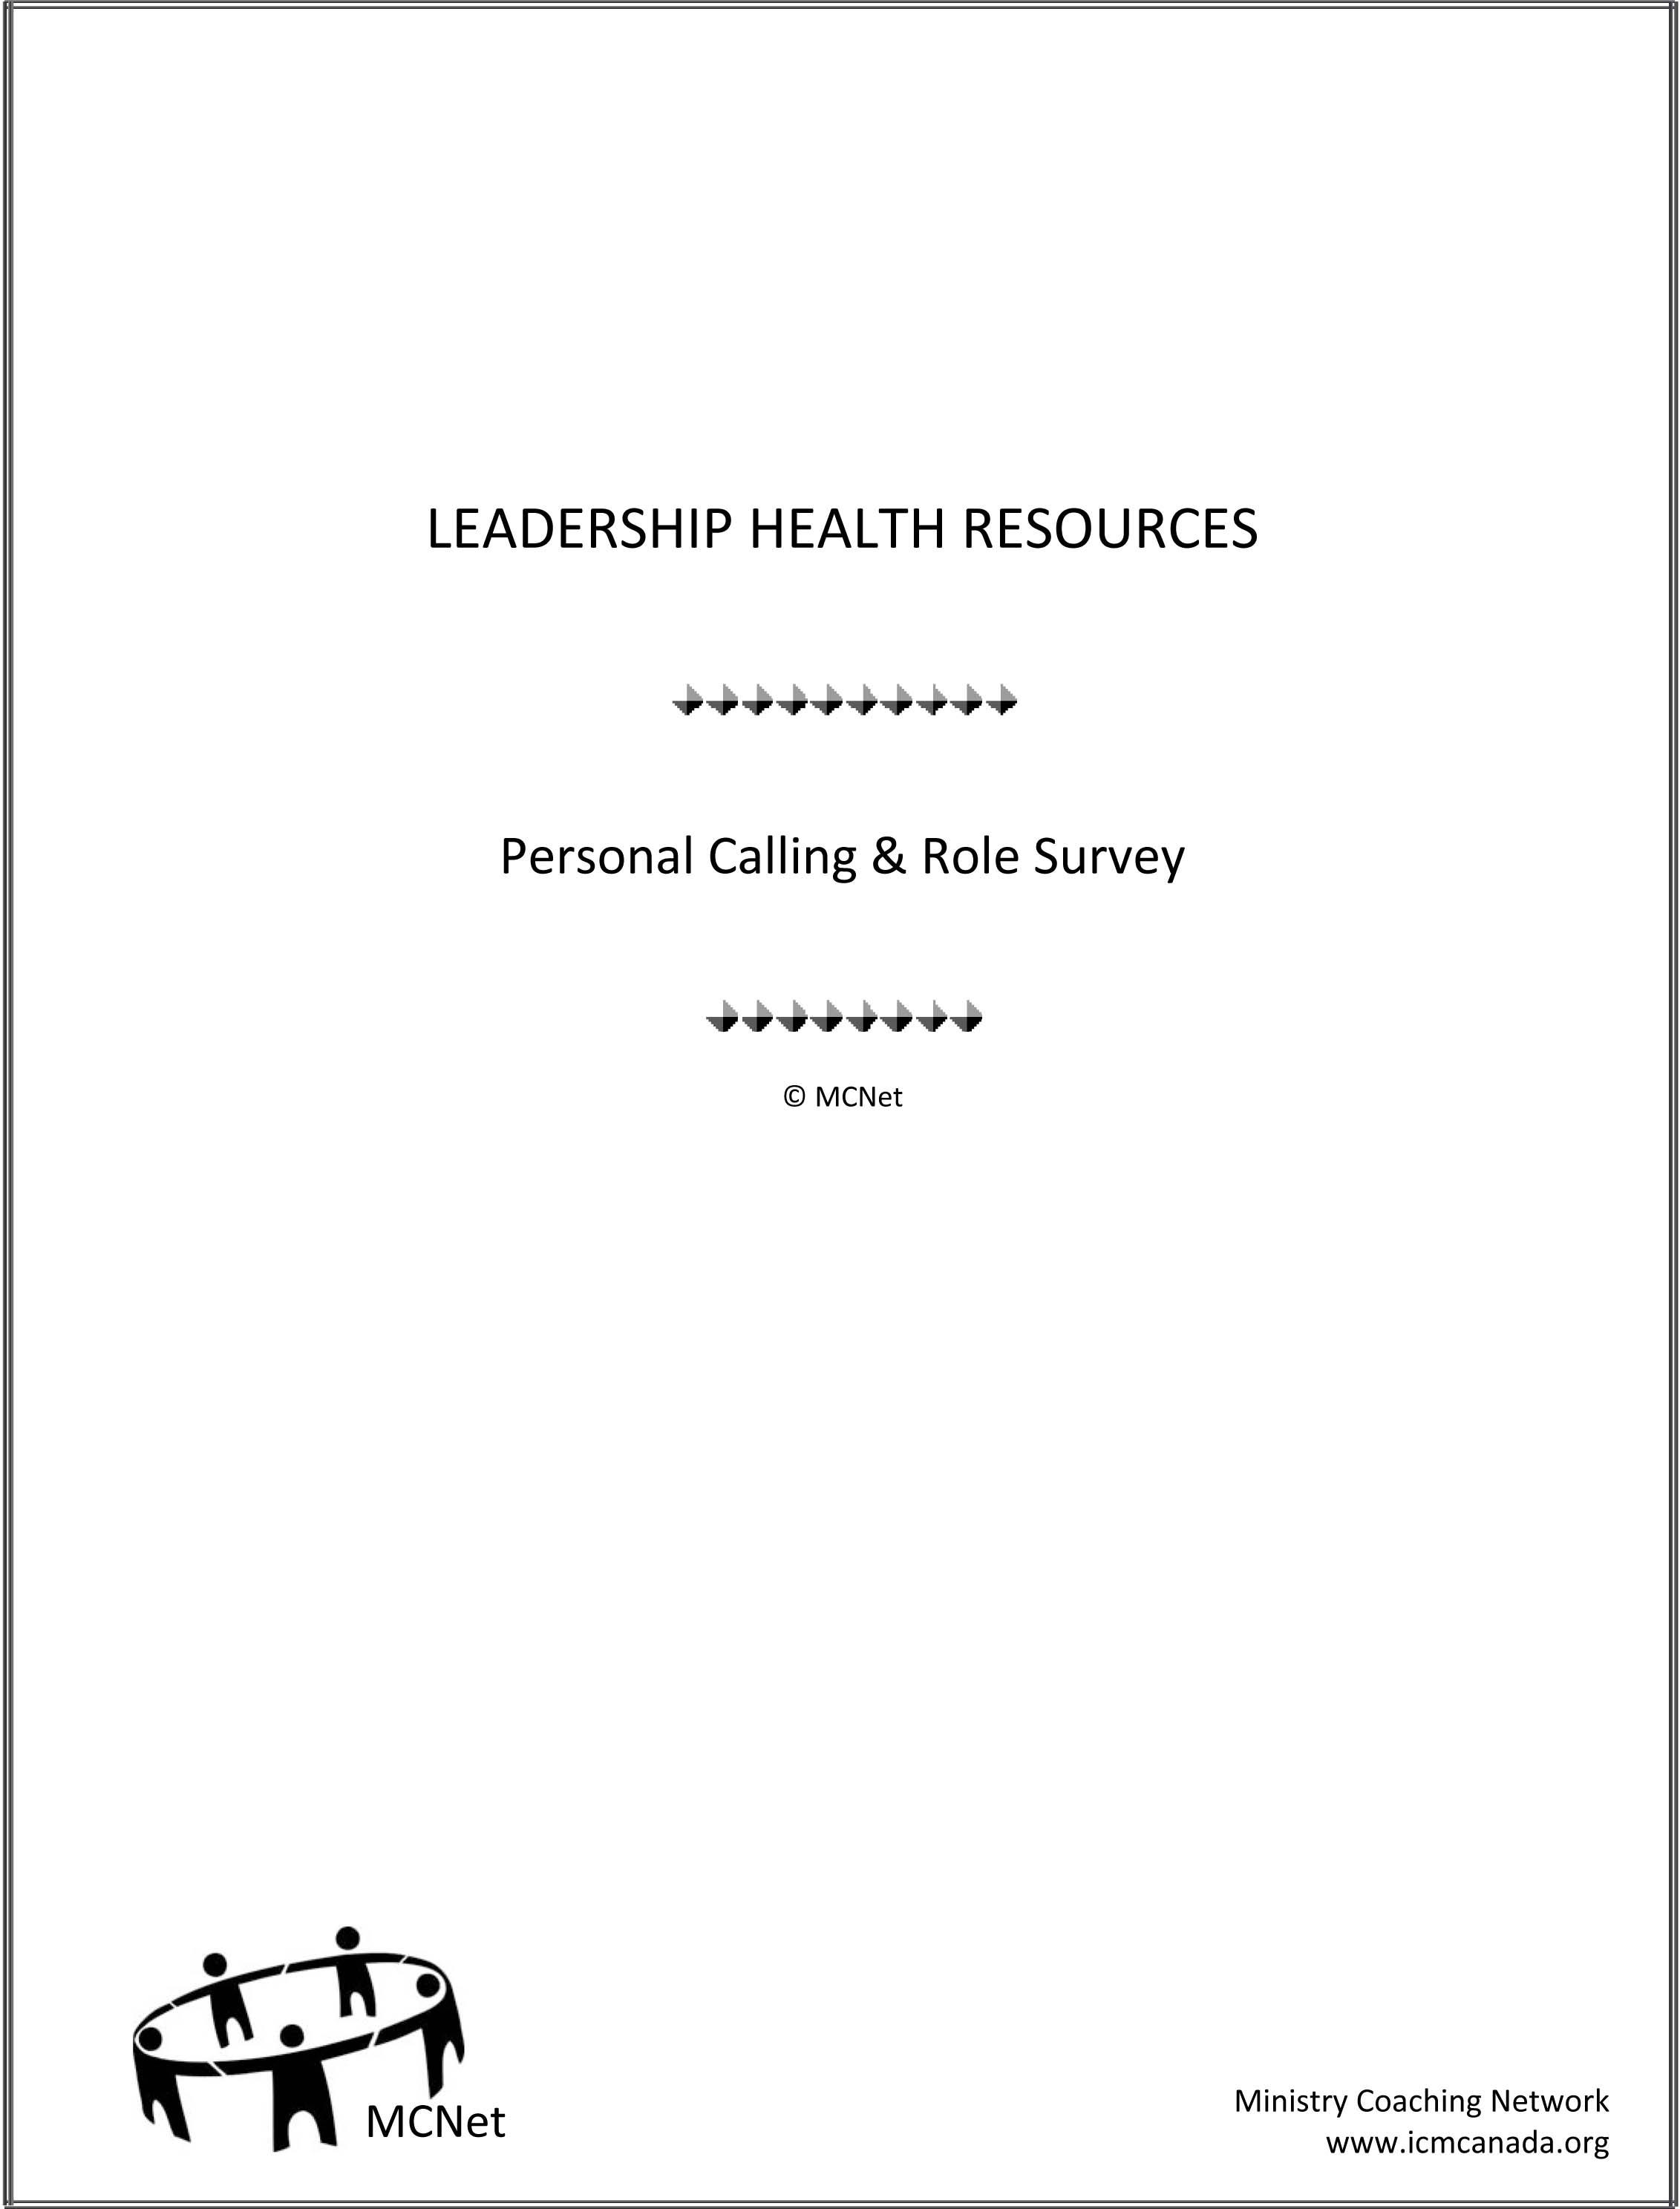 evaluating servant leadership Servant leadership is a growing topic in the leadership literature our study considered servant leadership's relationship to two outcomes, core self-evaluation and job satisfaction.